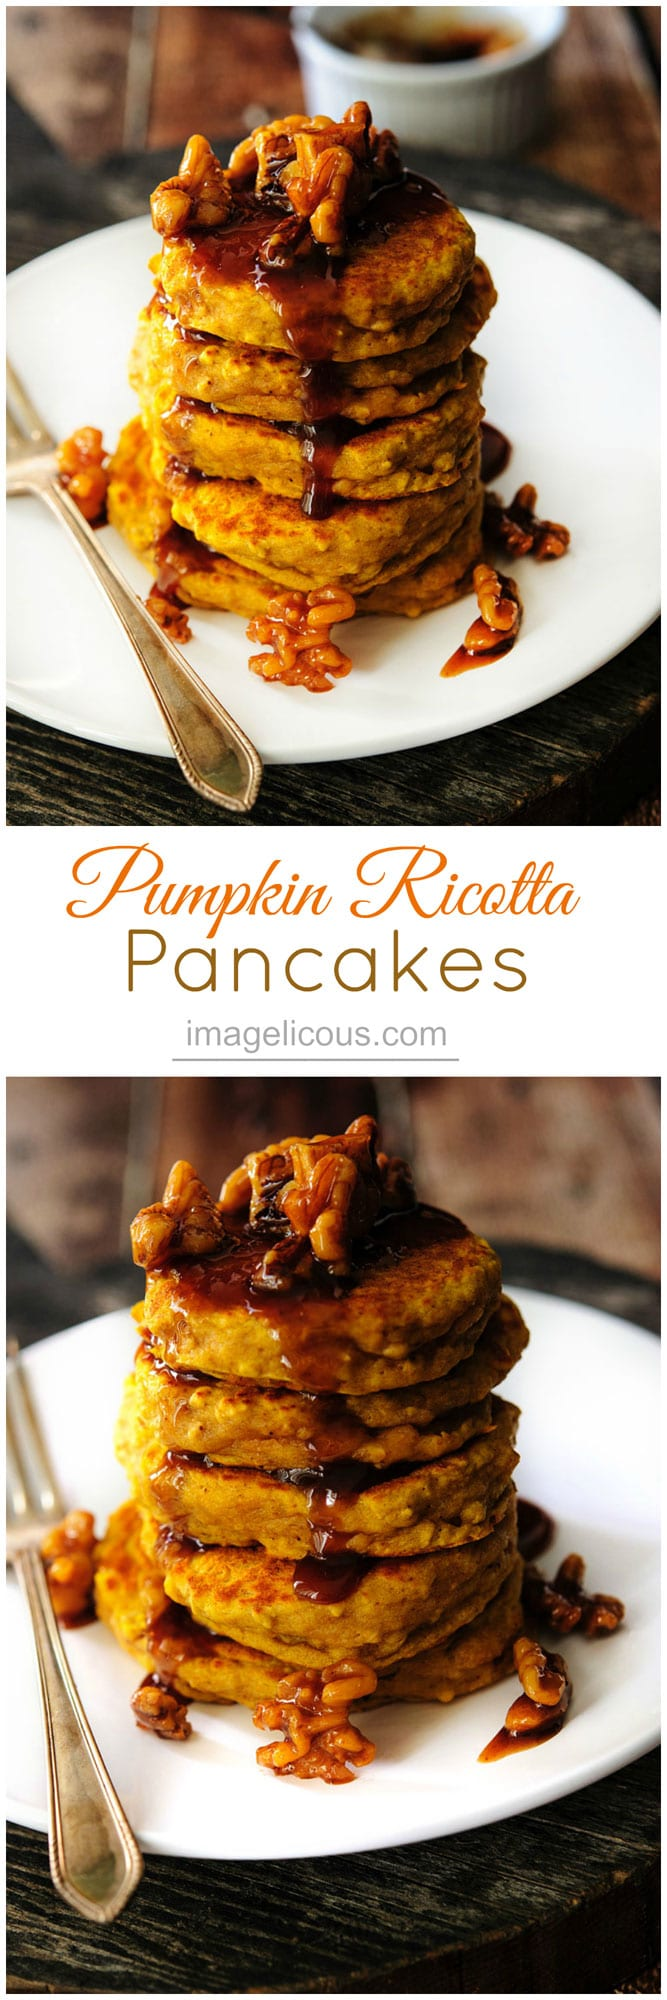 These Pumpkin Ricotta Pancakes are thick and dense, but still soft with a distinct ricotta flavour. They are perfect for a lazy autumn weekend morning brunch with delicious fall spices | Imagelicious